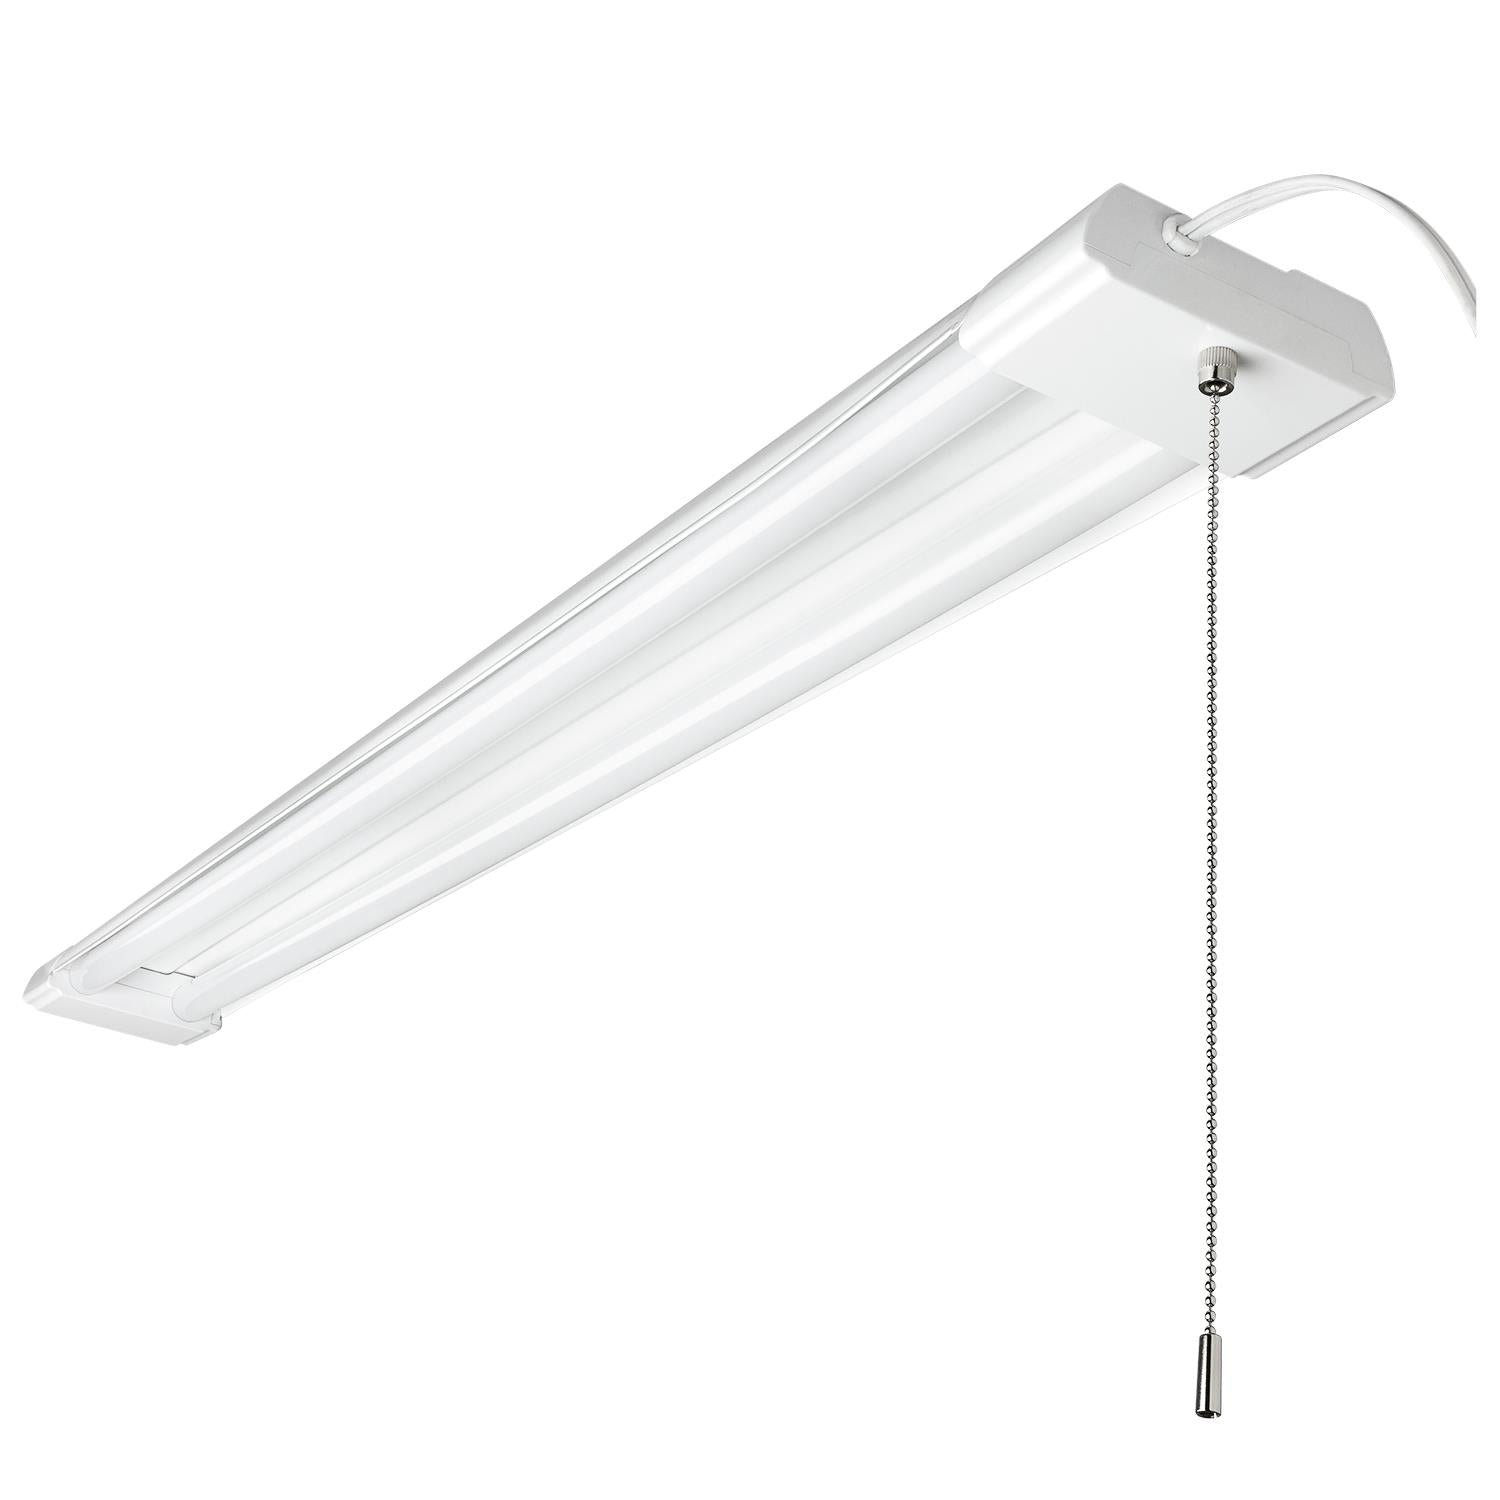 SUNLITE 48in. LED Shop Light Fixture 40W Cool White 4000Lm w/ pull-chain